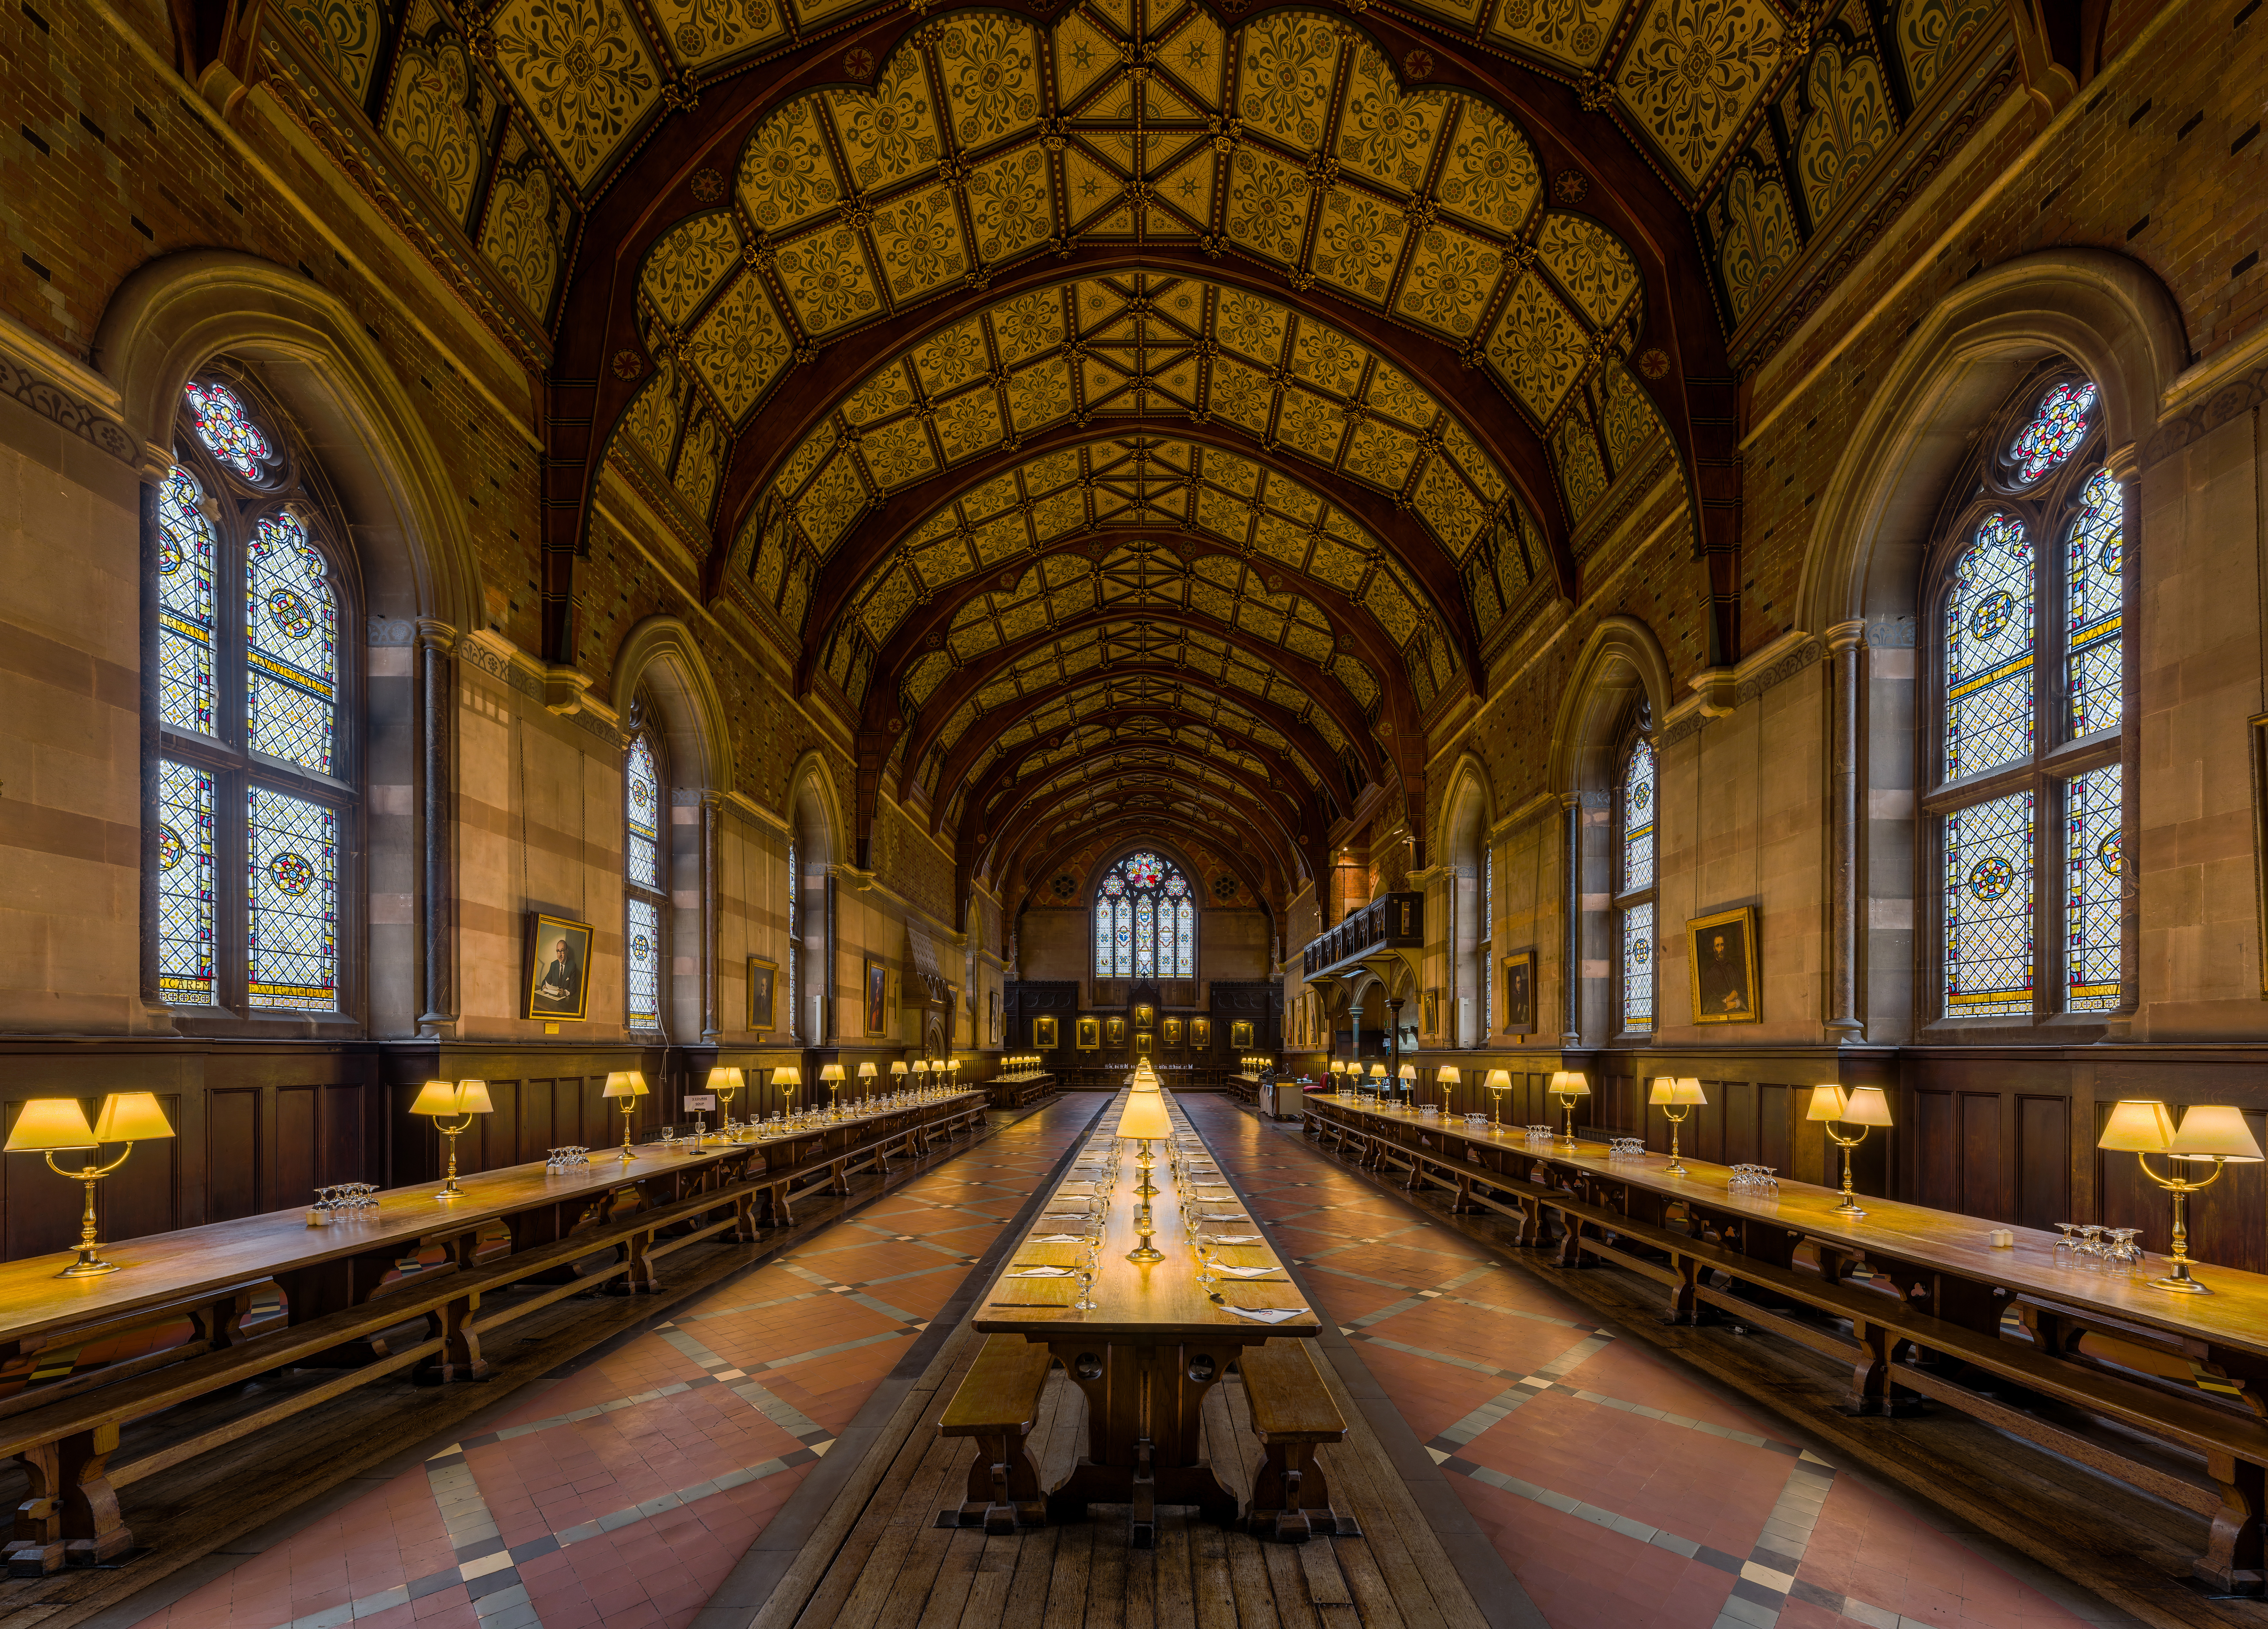 File:Keble College Dining Hall 2, Oxford, UK - Diliff.jpg